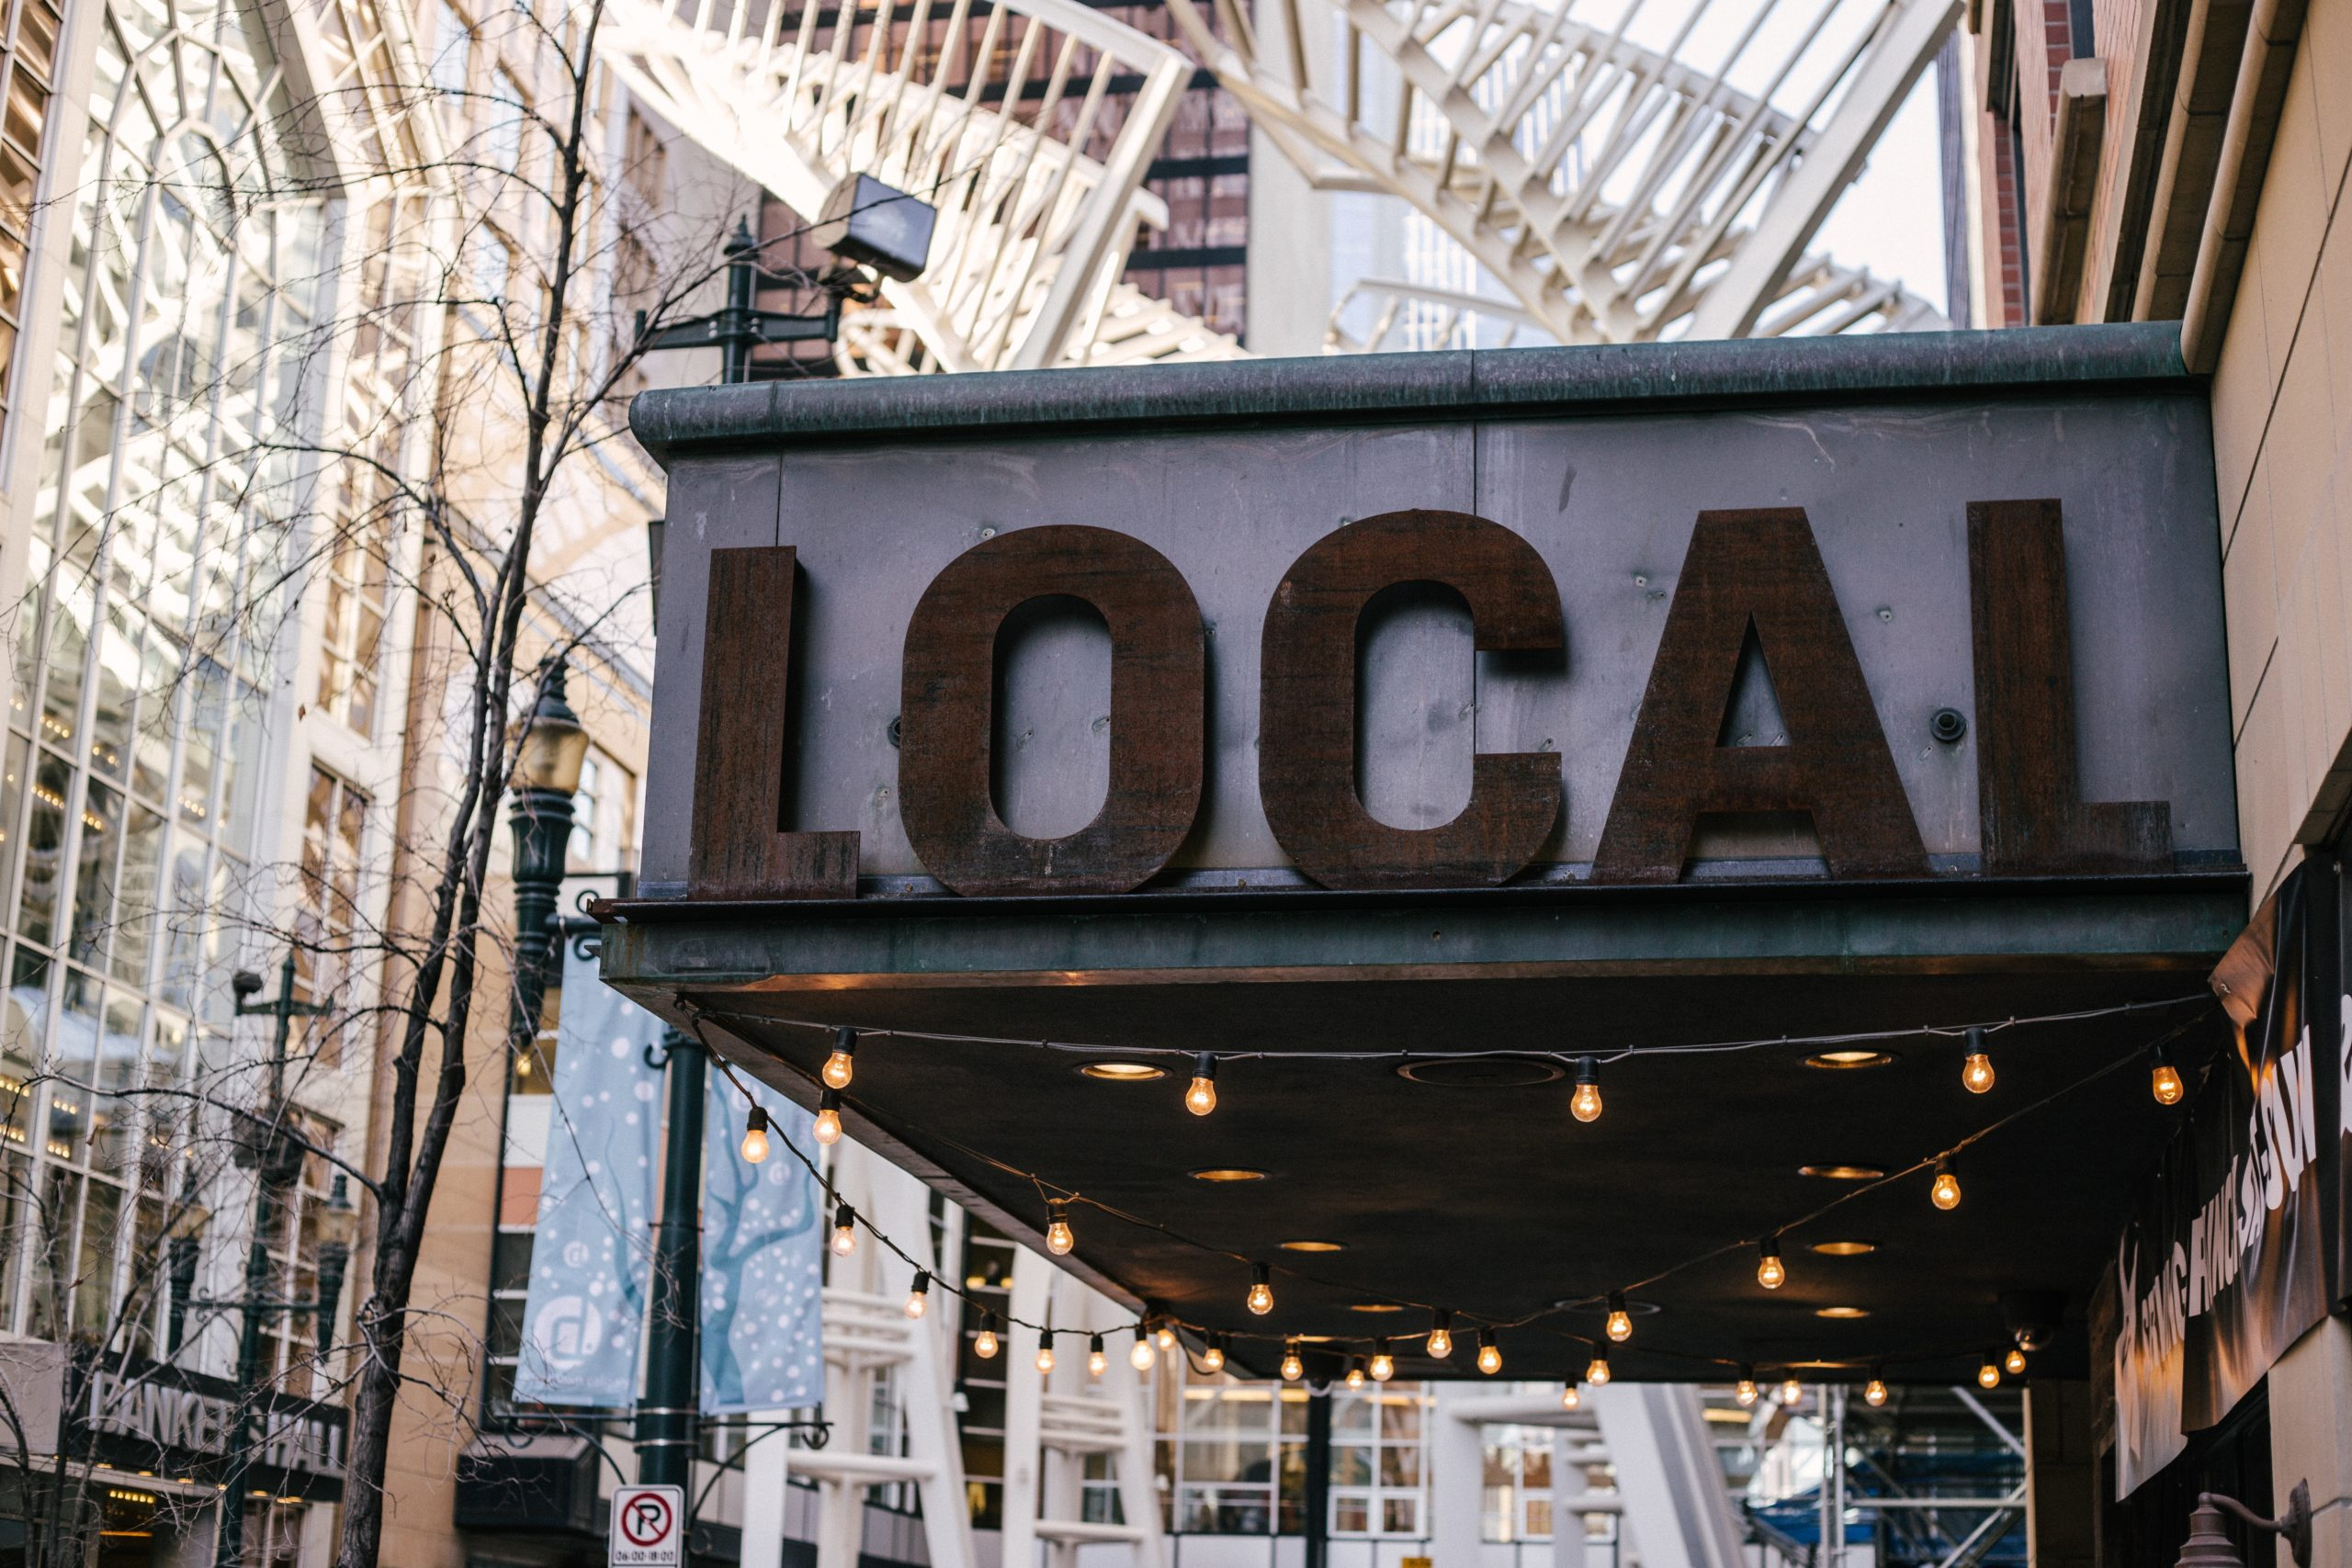 Location, location, location… the importance of hyperlocal marketing in local businesses